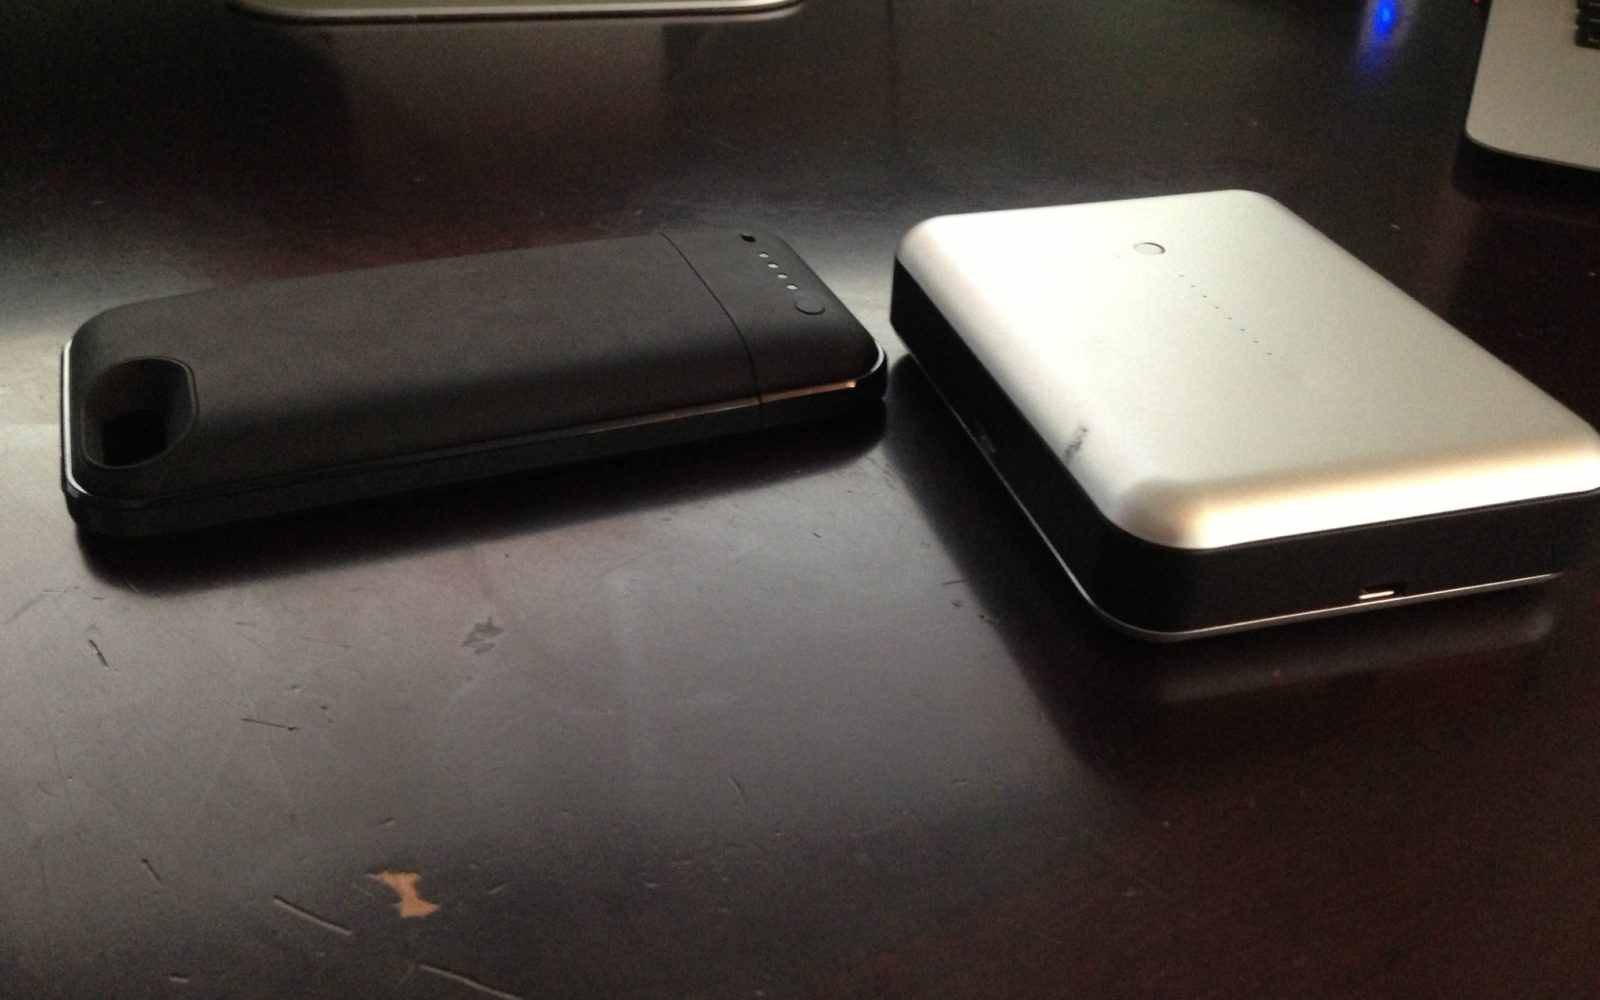 lowest price d19c4 7184e iOS Device backup battery review two-pack: Mophie Juice Pack Plus ...